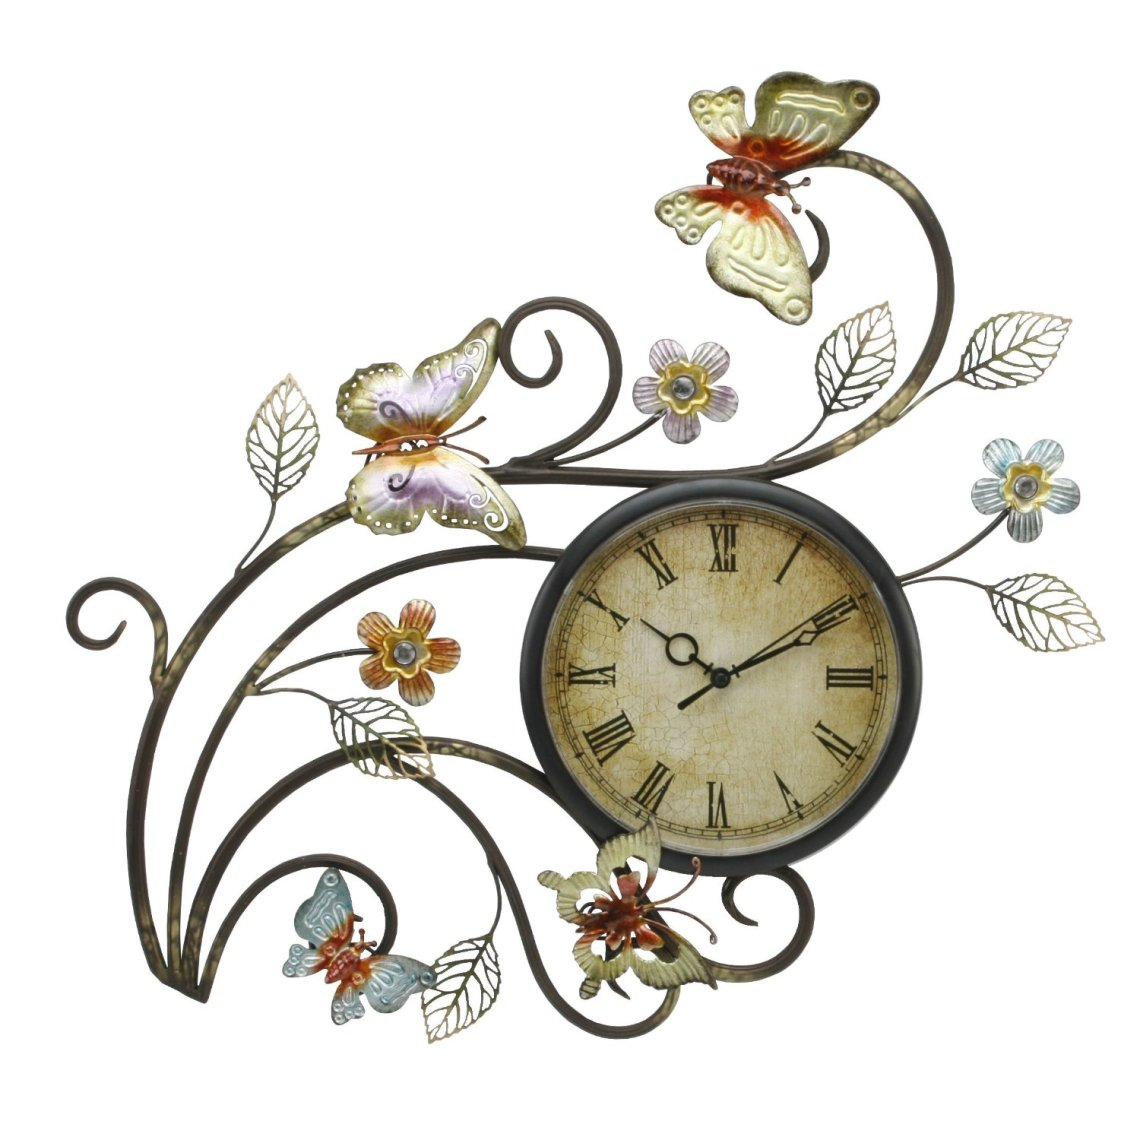 Image Result For Contemporaryerfly Metal Wall Art With Clock